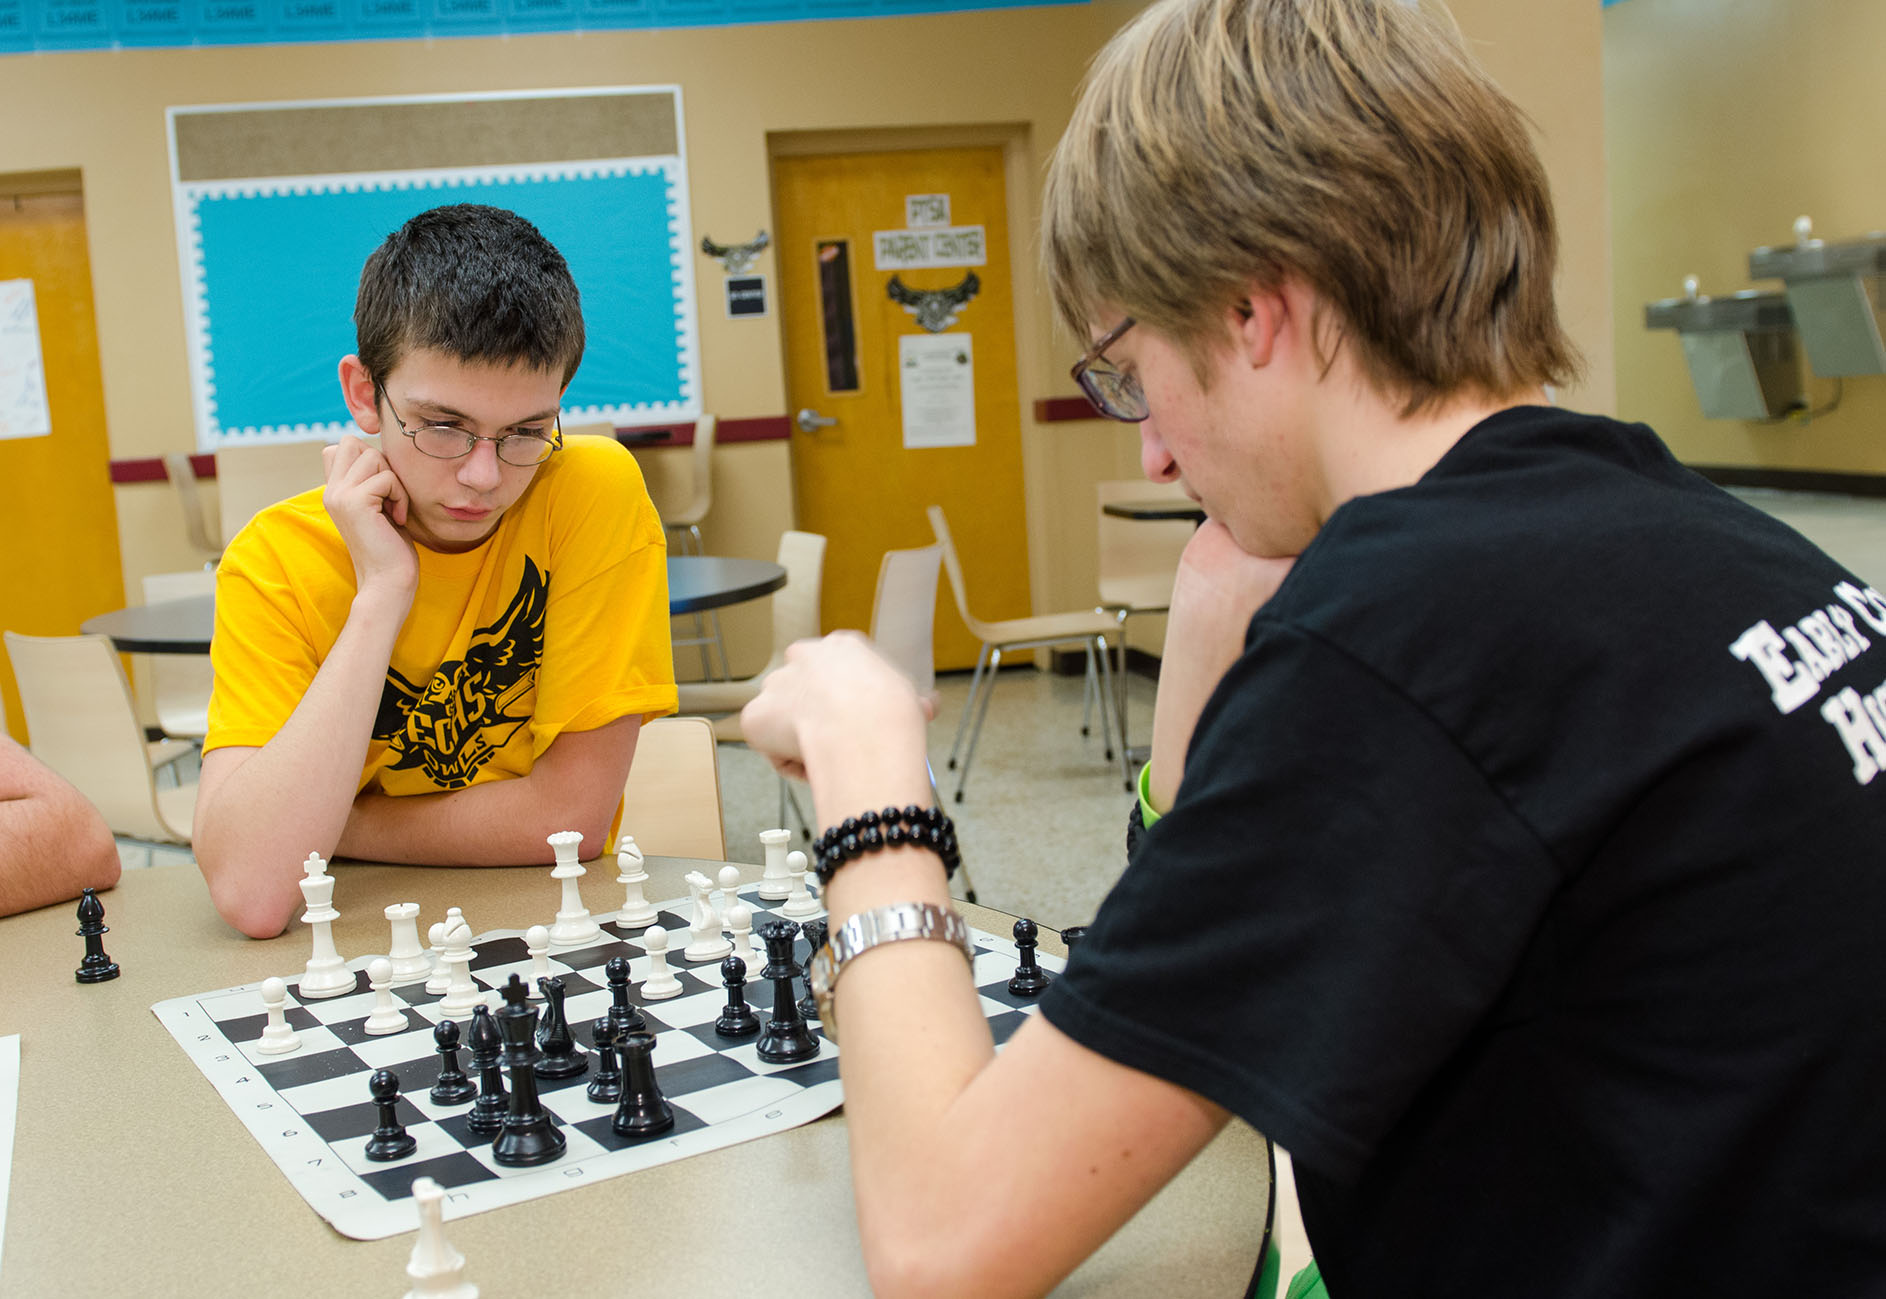 ECHS chess team places in top 20 at national chess tournament